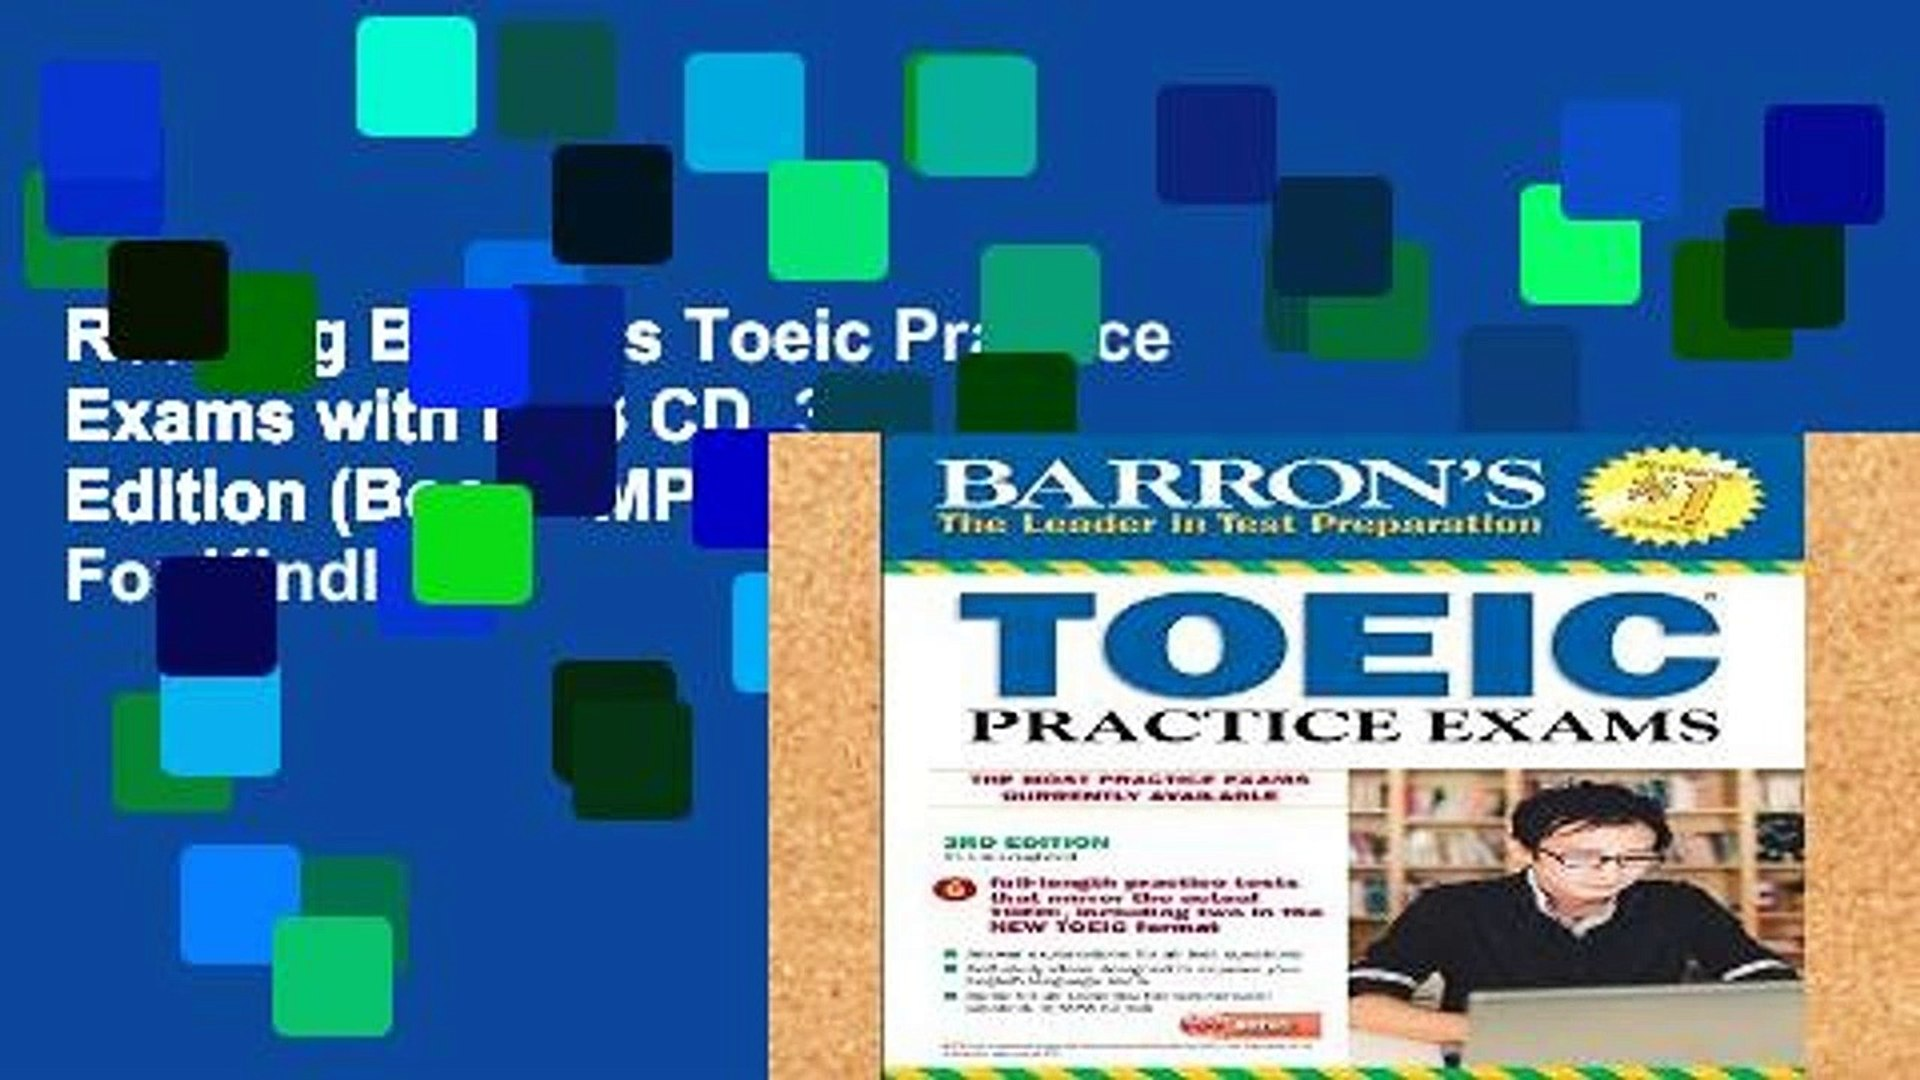 Reading Barron s Toeic Practice Exams with MP3 CD, 3rd Edition (Book   MP3 CD) For Kindle